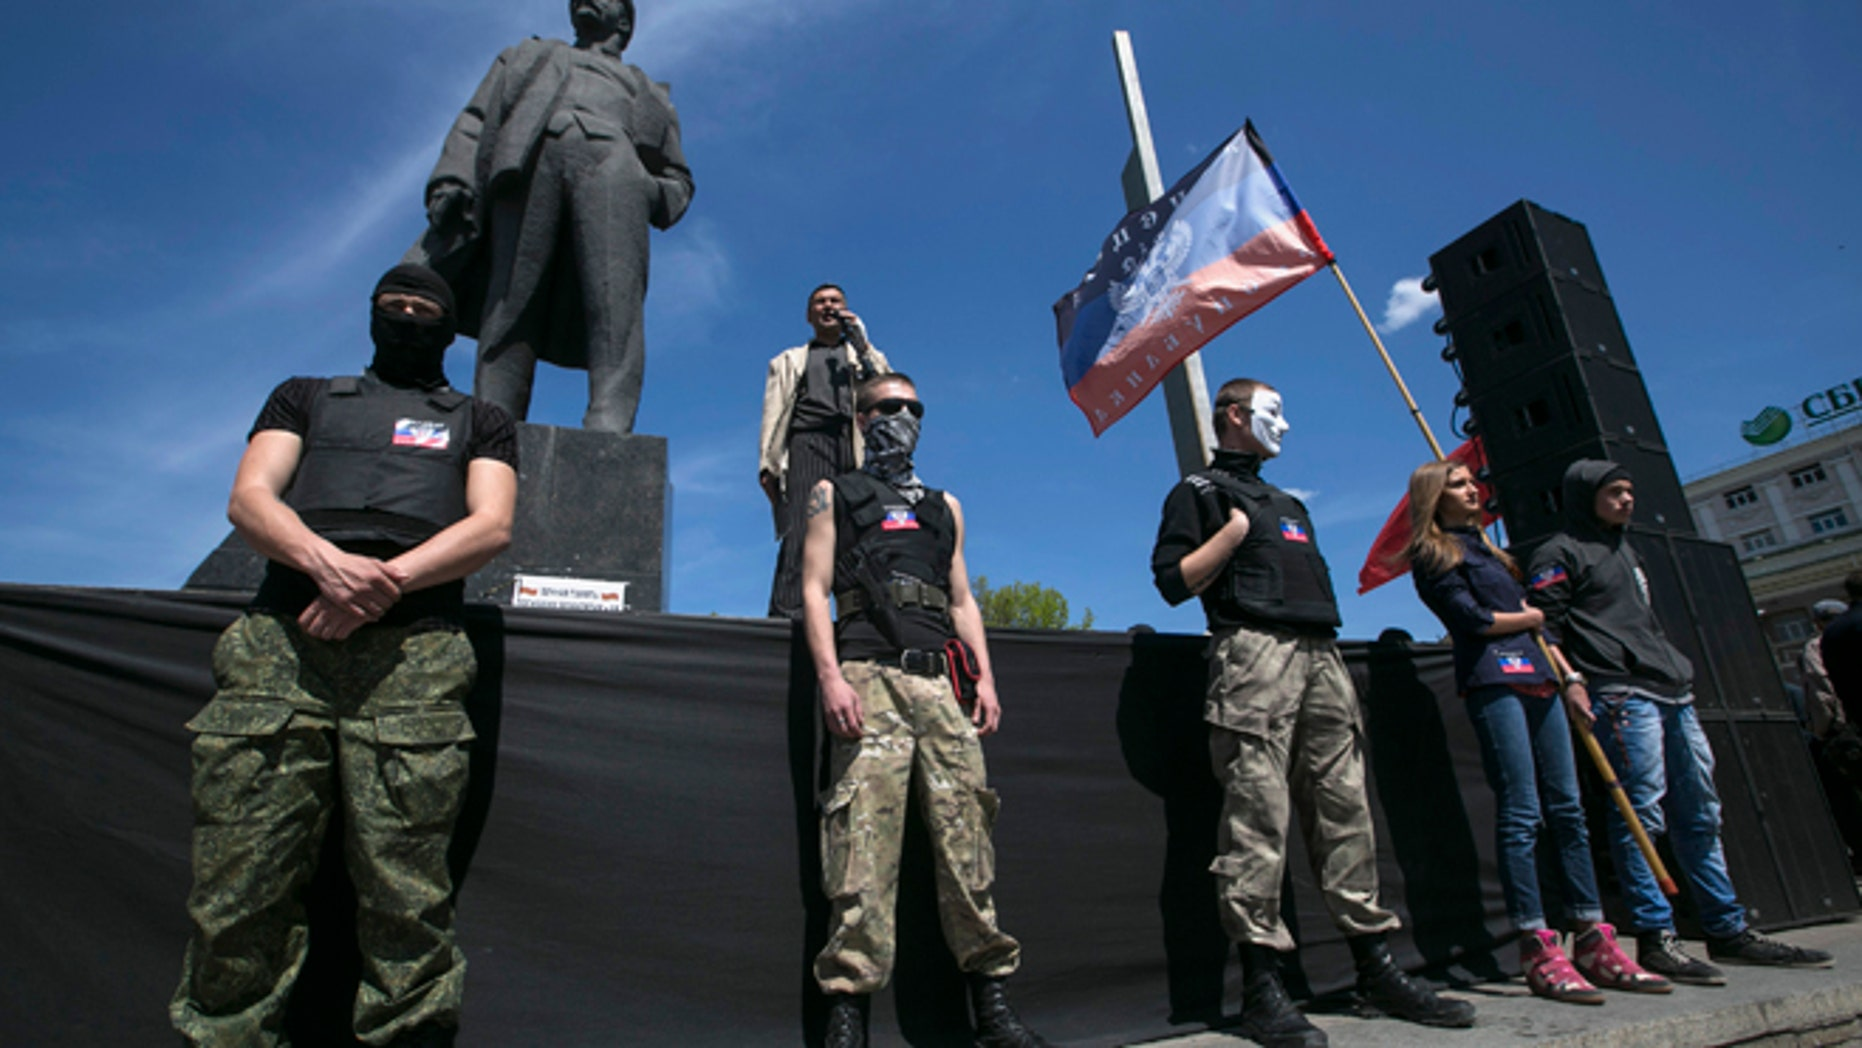 April 27, 2014: Pro-Russian activists at a rally in Donetsk, eastern Ukraine.